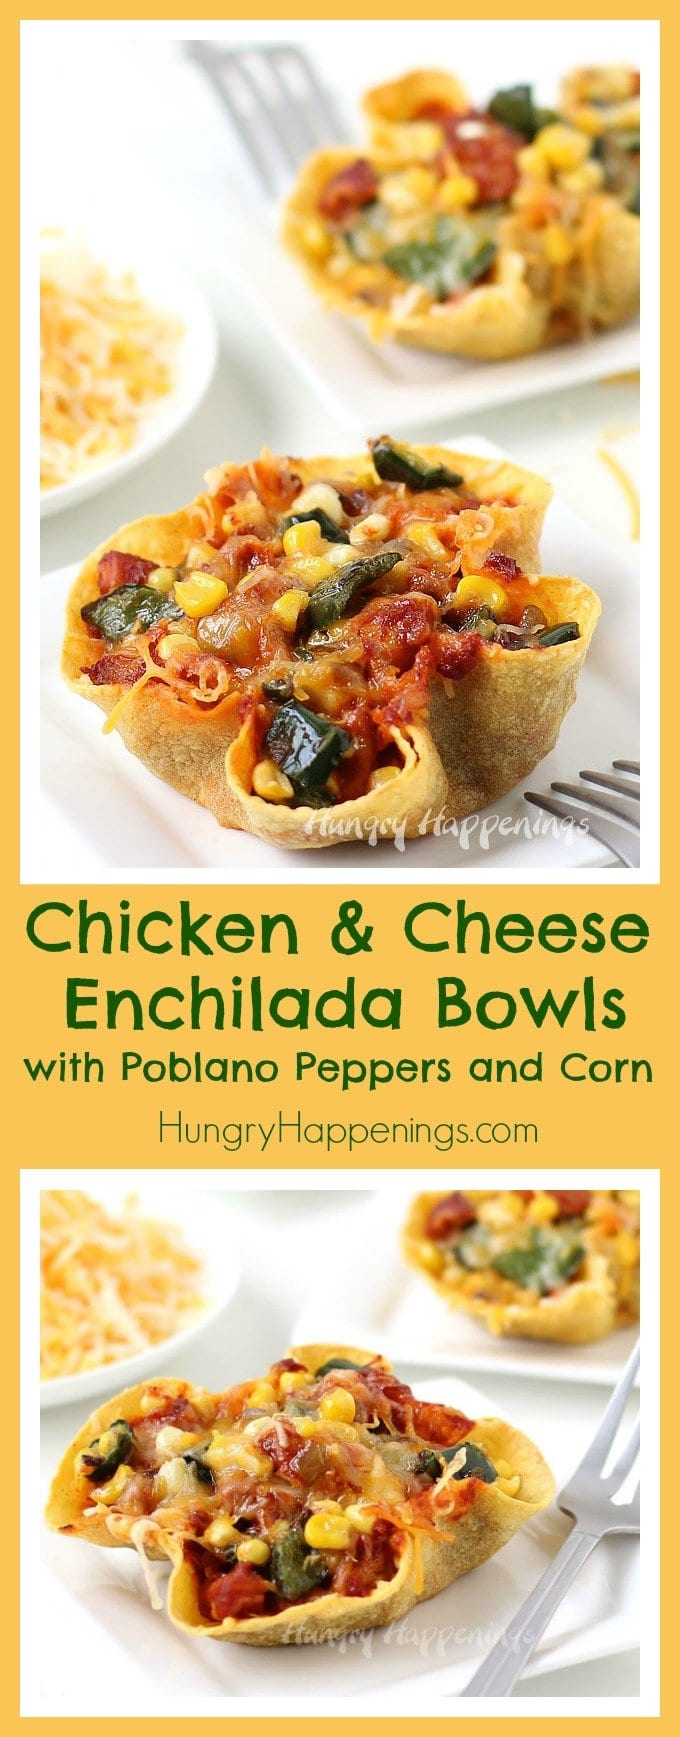 Baked crispy corn tortilla bowls filled with chicken, cheese, poblano peppers, and corn in red chili sauce. These Chicken and Cheese Enchilada Bowls make the perfect meal for a fiesta or just a weeknight dinner.